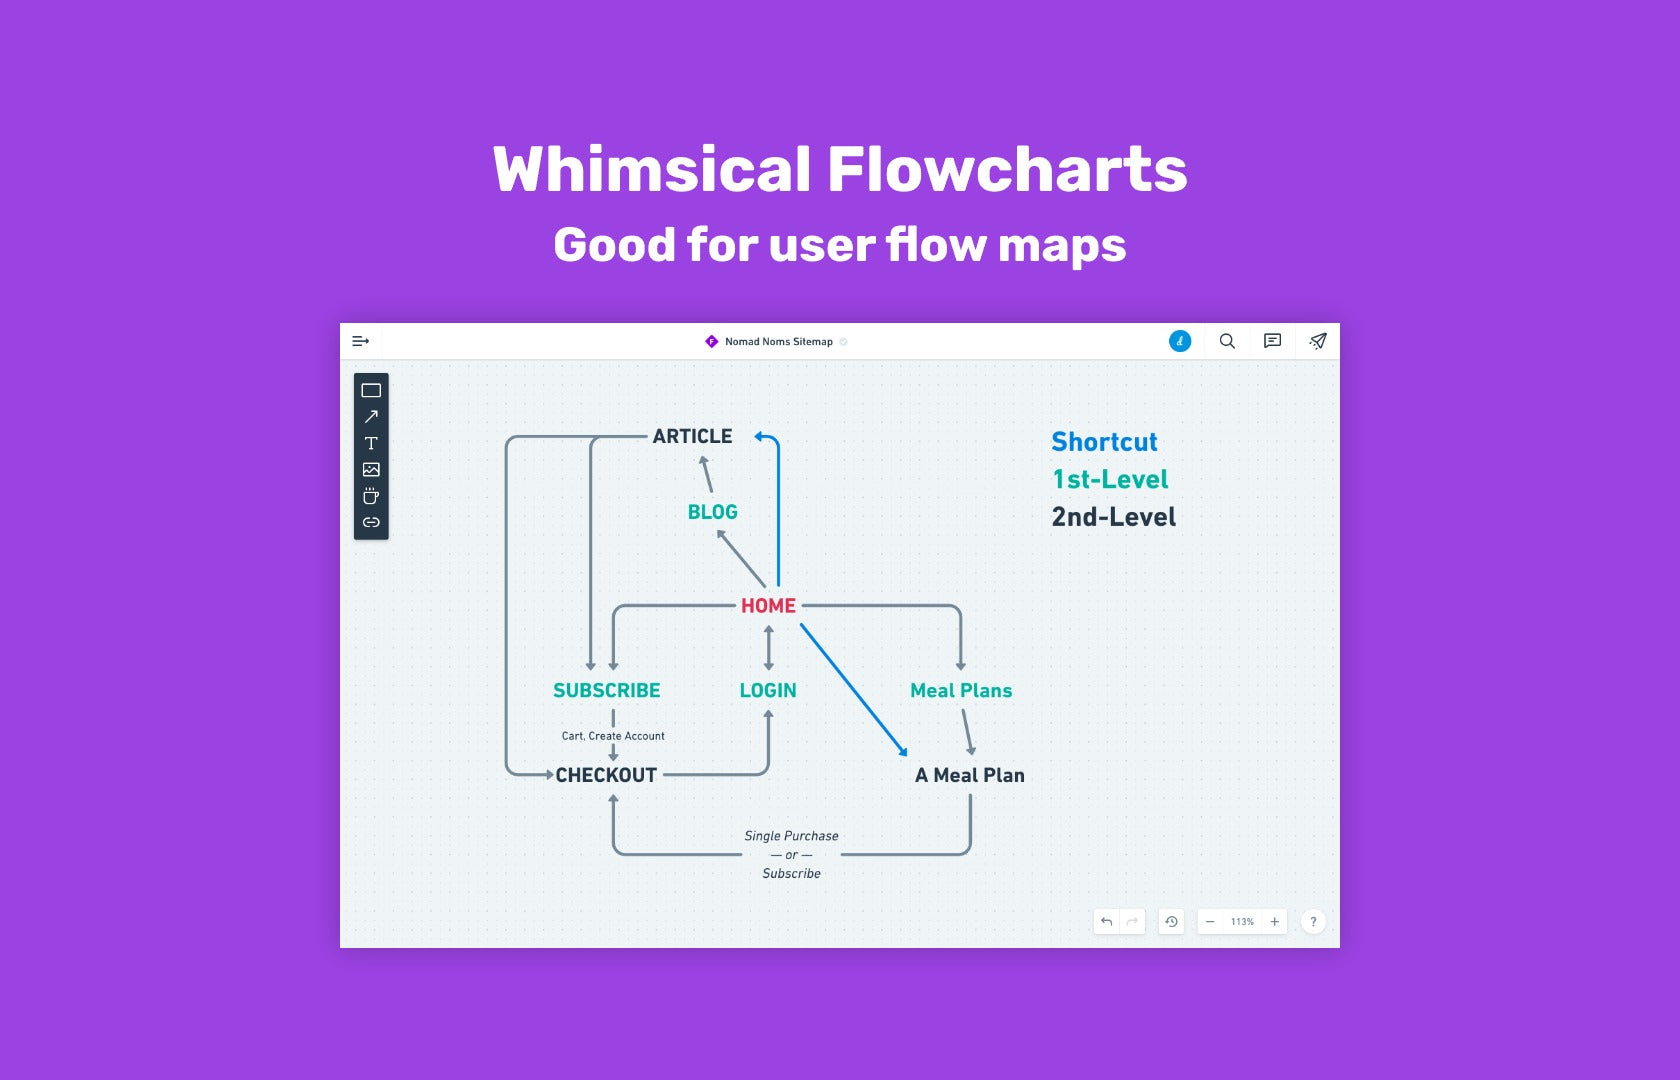 User flow mapping with Whimsical Flowcharts